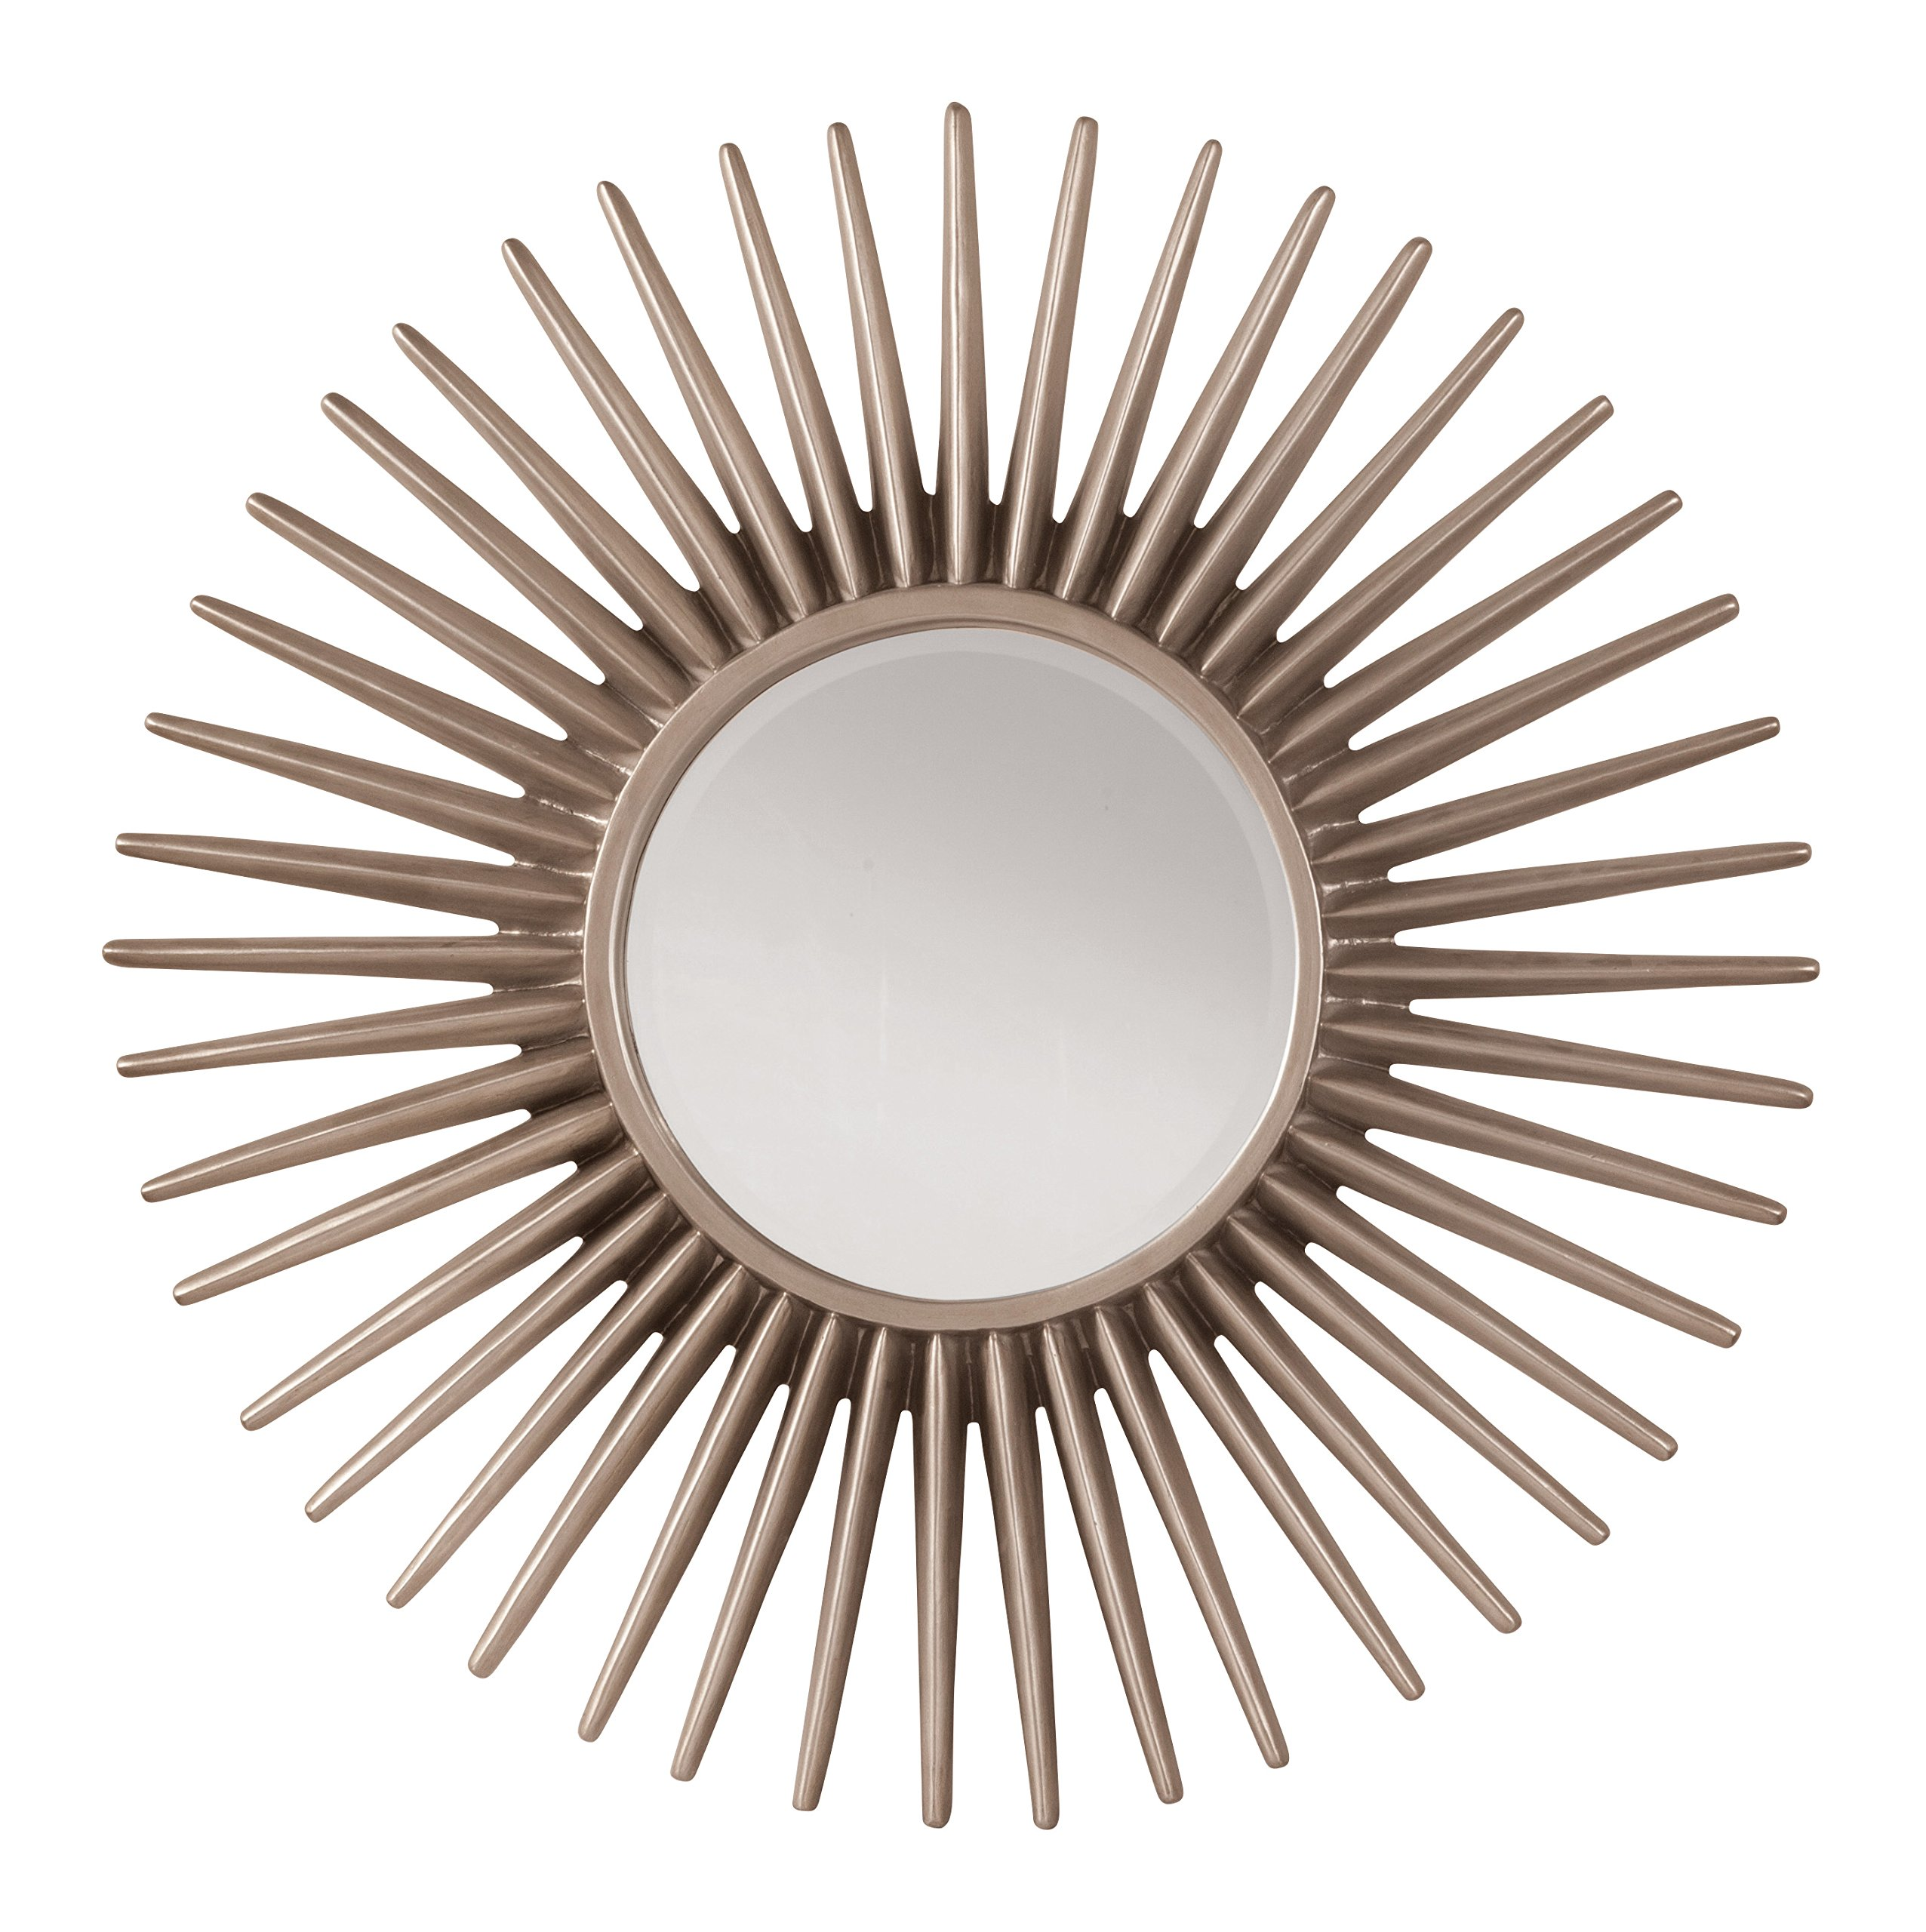 OSP Designs GC1263-osp Ella Beveled Wall Mirror with Sunbeam Frame, Silver Pewter - Color: Silver Pewter Fabric: N/A;N/A Manufactured in China - bathroom-mirrors, bathroom-accessories, bathroom - 915hjr 9%2BbL -